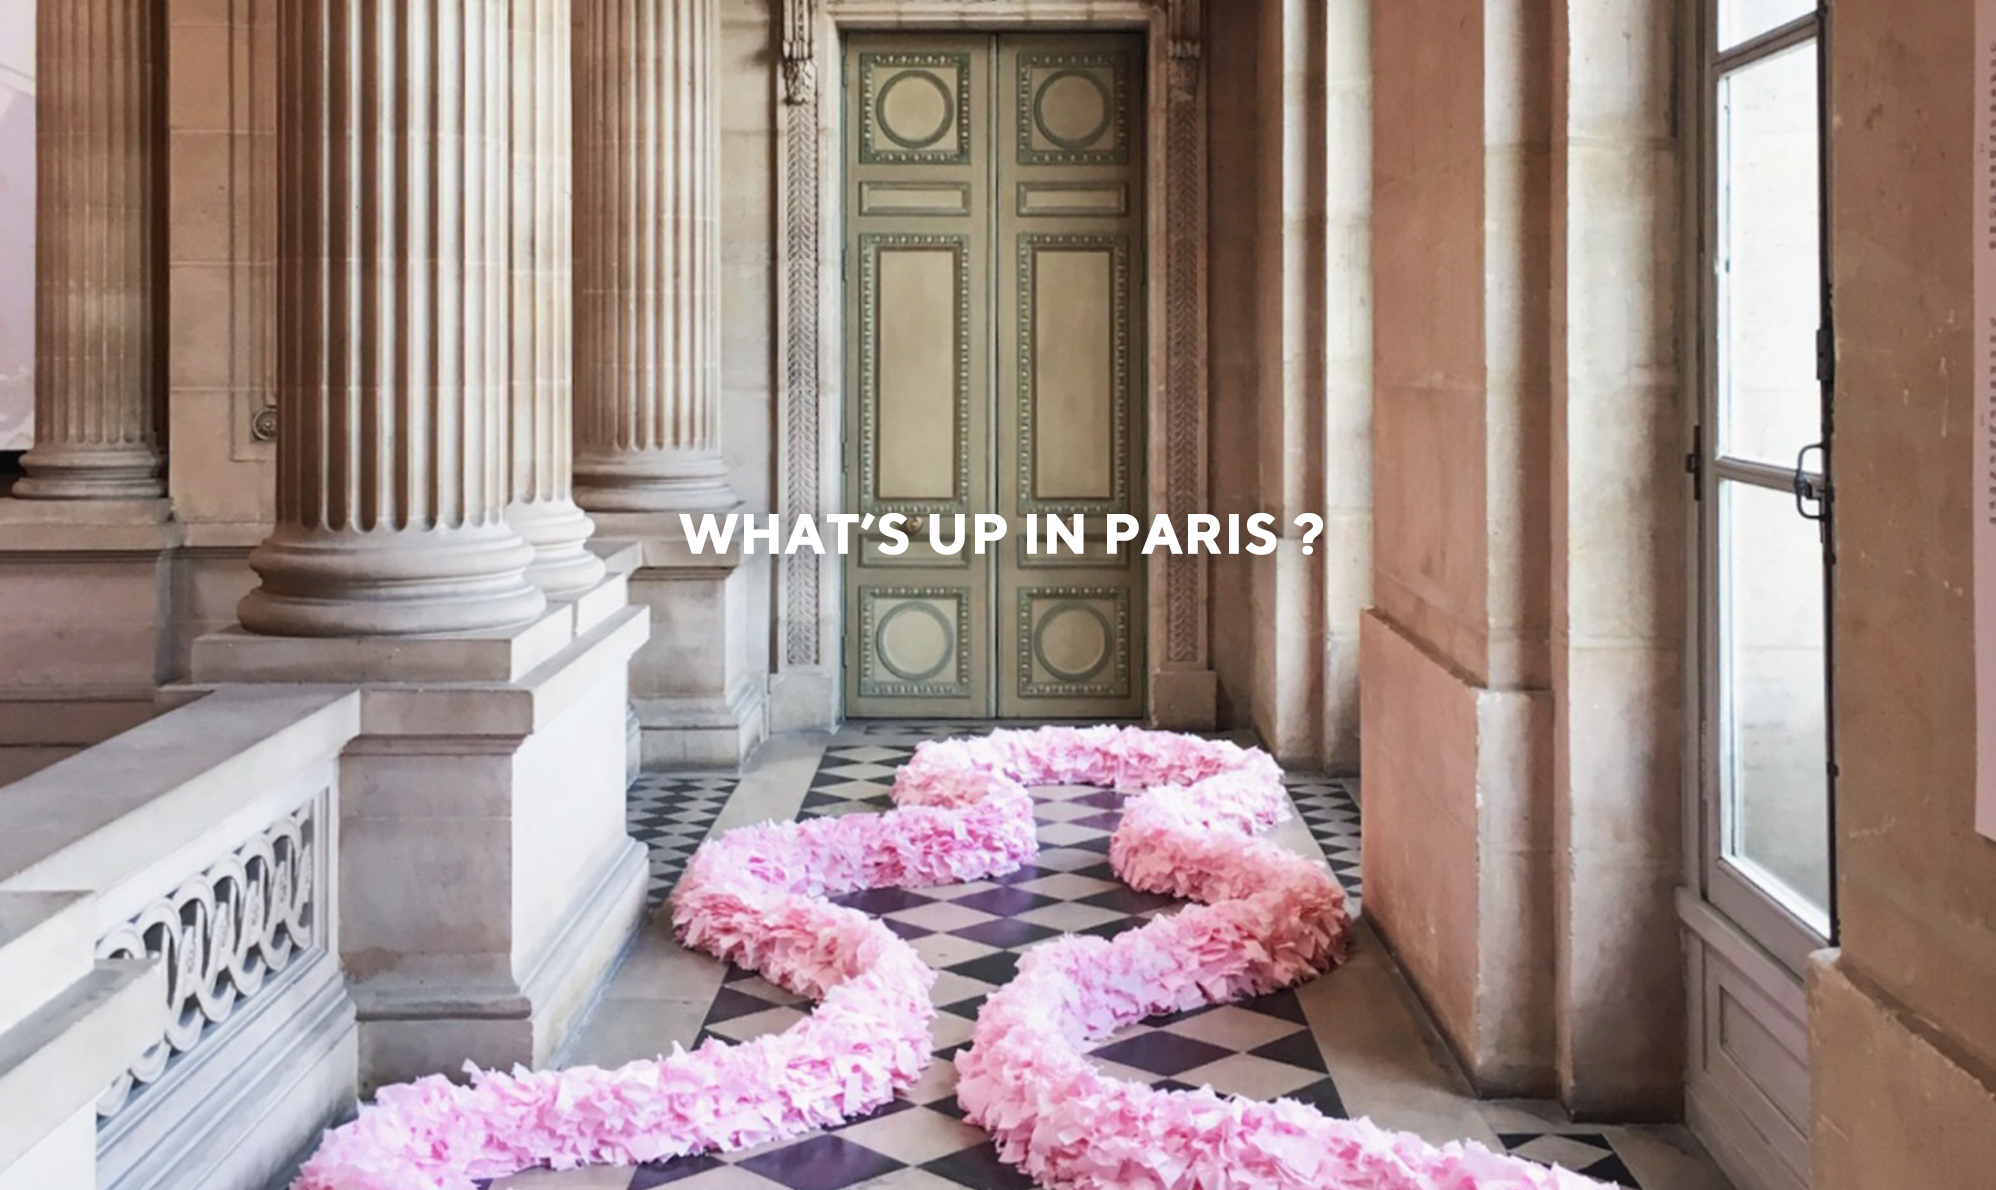 WHAT'S UP IN PARIS?